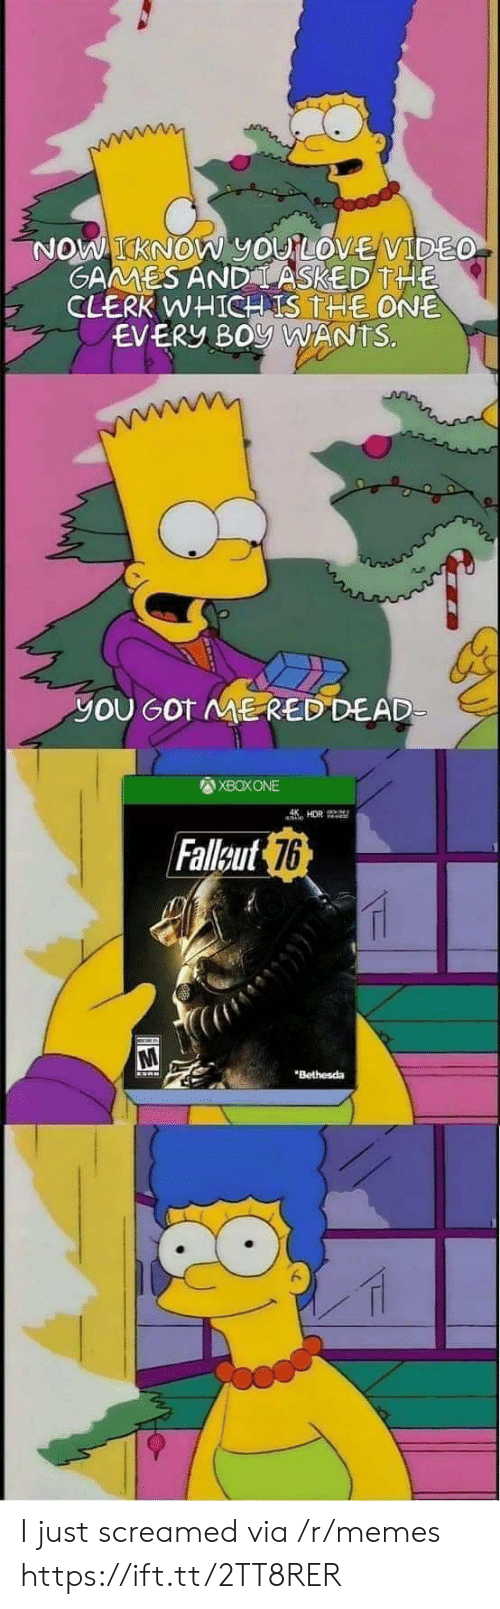 red dead: KNOW yOU LOVE VIDE  GAMMESAND LASKED THE  CLERK WHICH IS THE ONE  EVERY BOy WANTS.  yOU GOT ME RED DEAD  XBOXONE  Falleut  76  Bethesda I just screamed via /r/memes https://ift.tt/2TT8RER